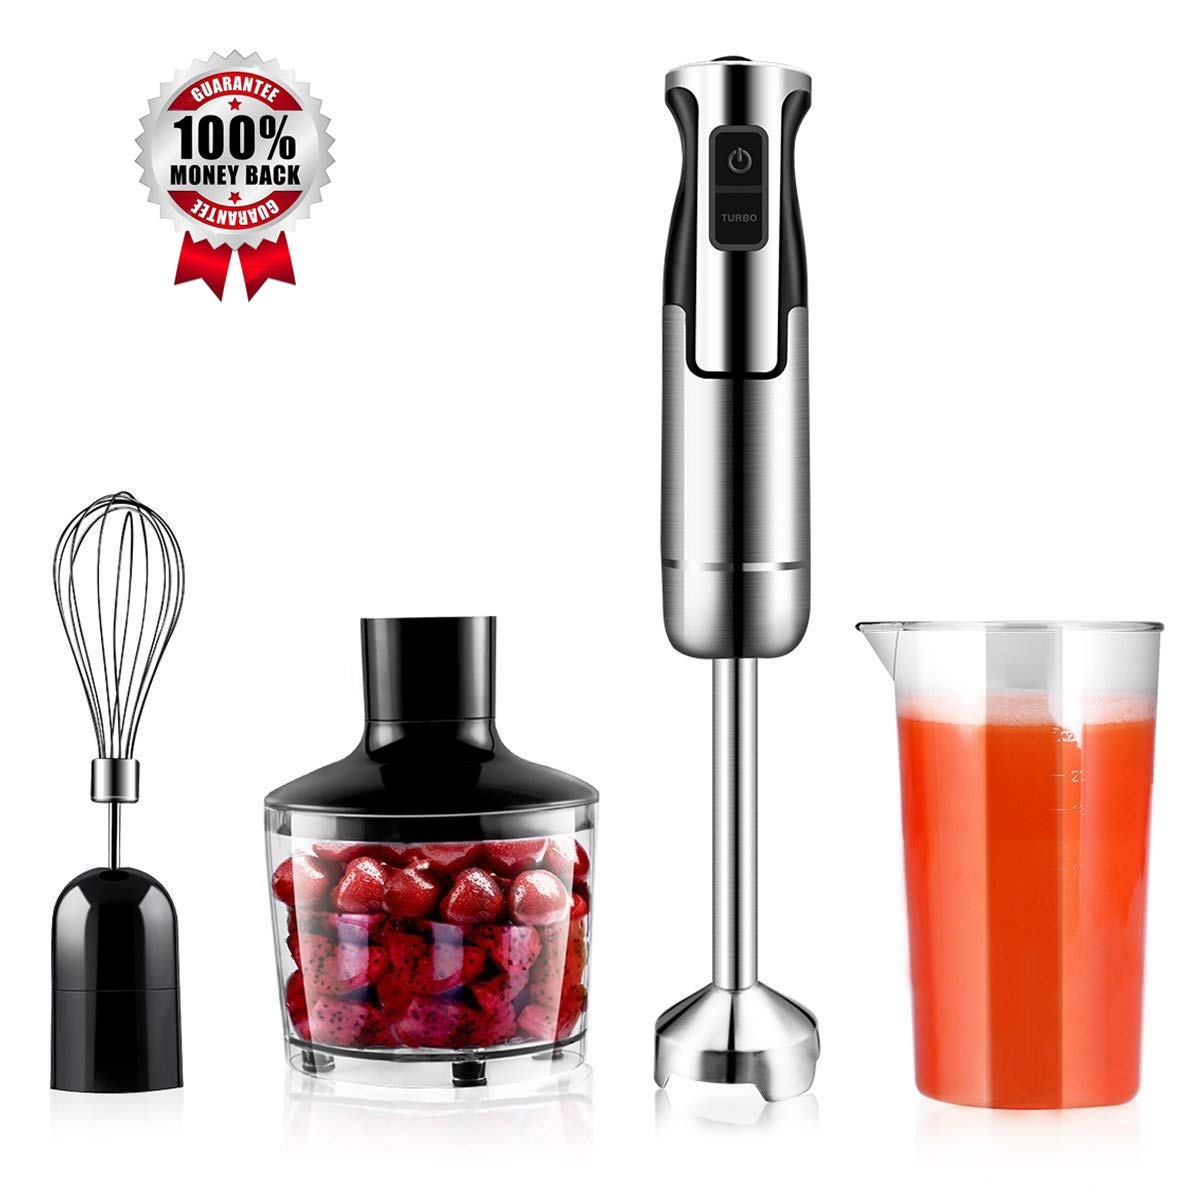 Hand Immersion Blender 500W 8 Speed Control, 4-In-1 Handheld Blender Powerful Smart Include Food Chopper, Egg Whisk, BPA Free Beaker, For Soups, Smoothie, Baby Food By GEEMAY